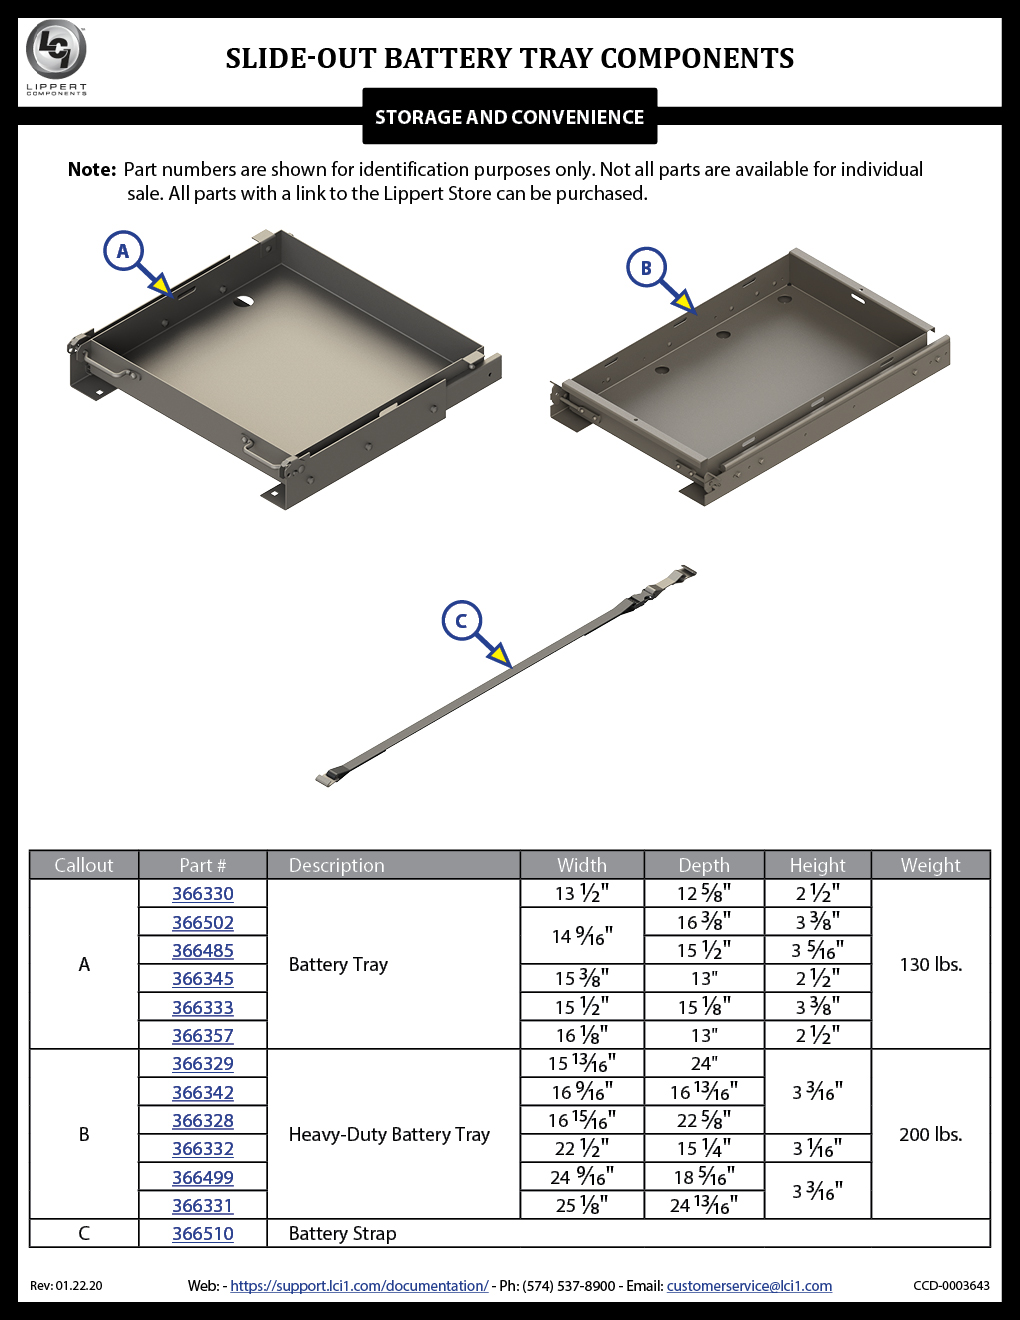 Slide-Out Battery Tray Components